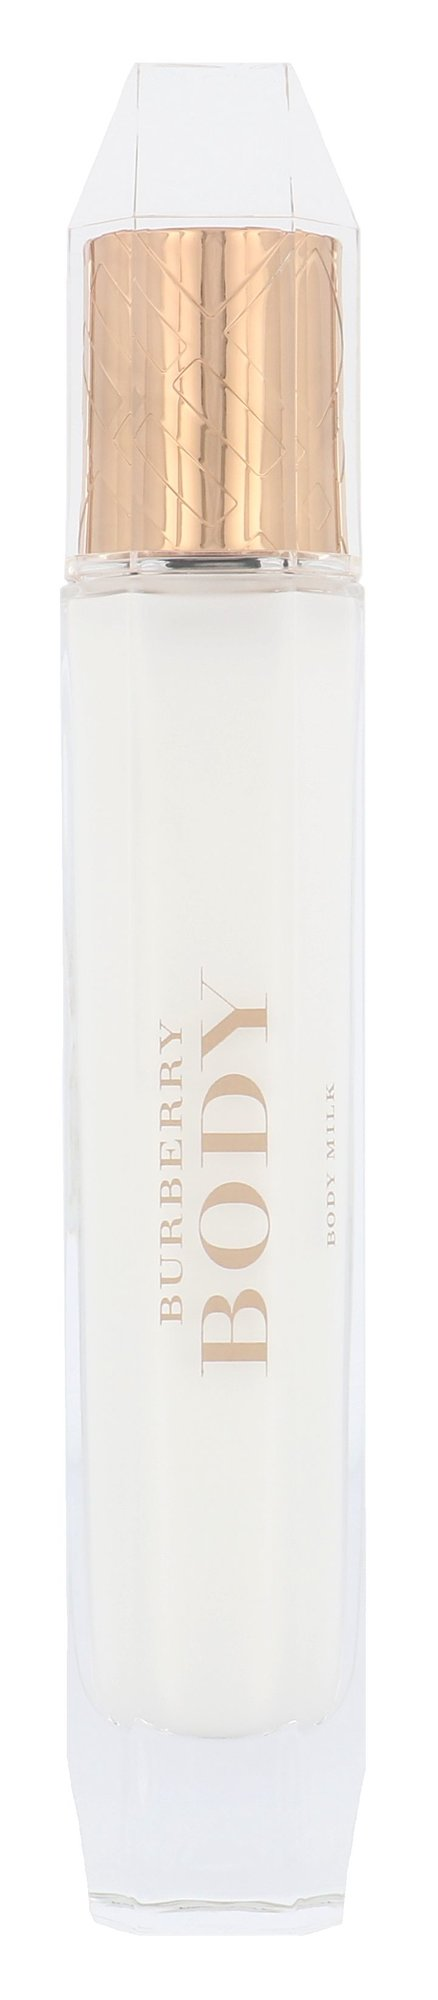 Burberry Body Body lotion 85ml